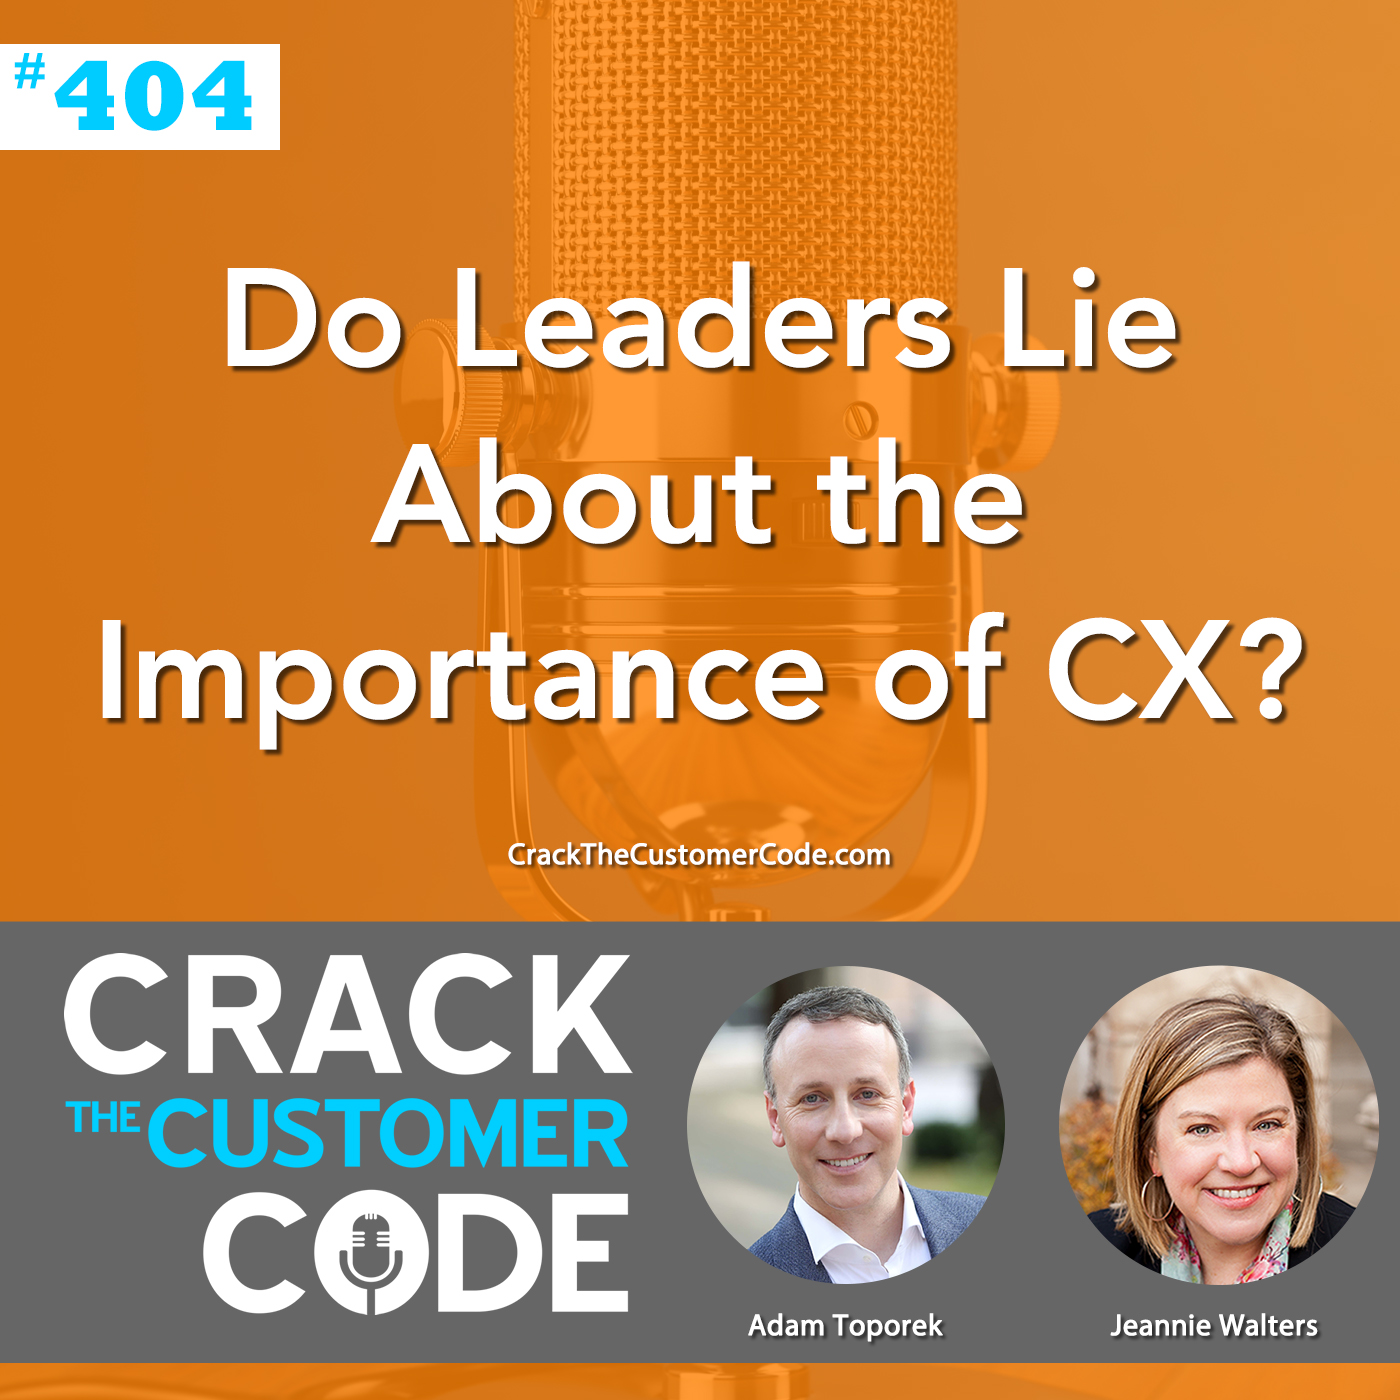 404: Do Leaders Lie About the Importance of CX?